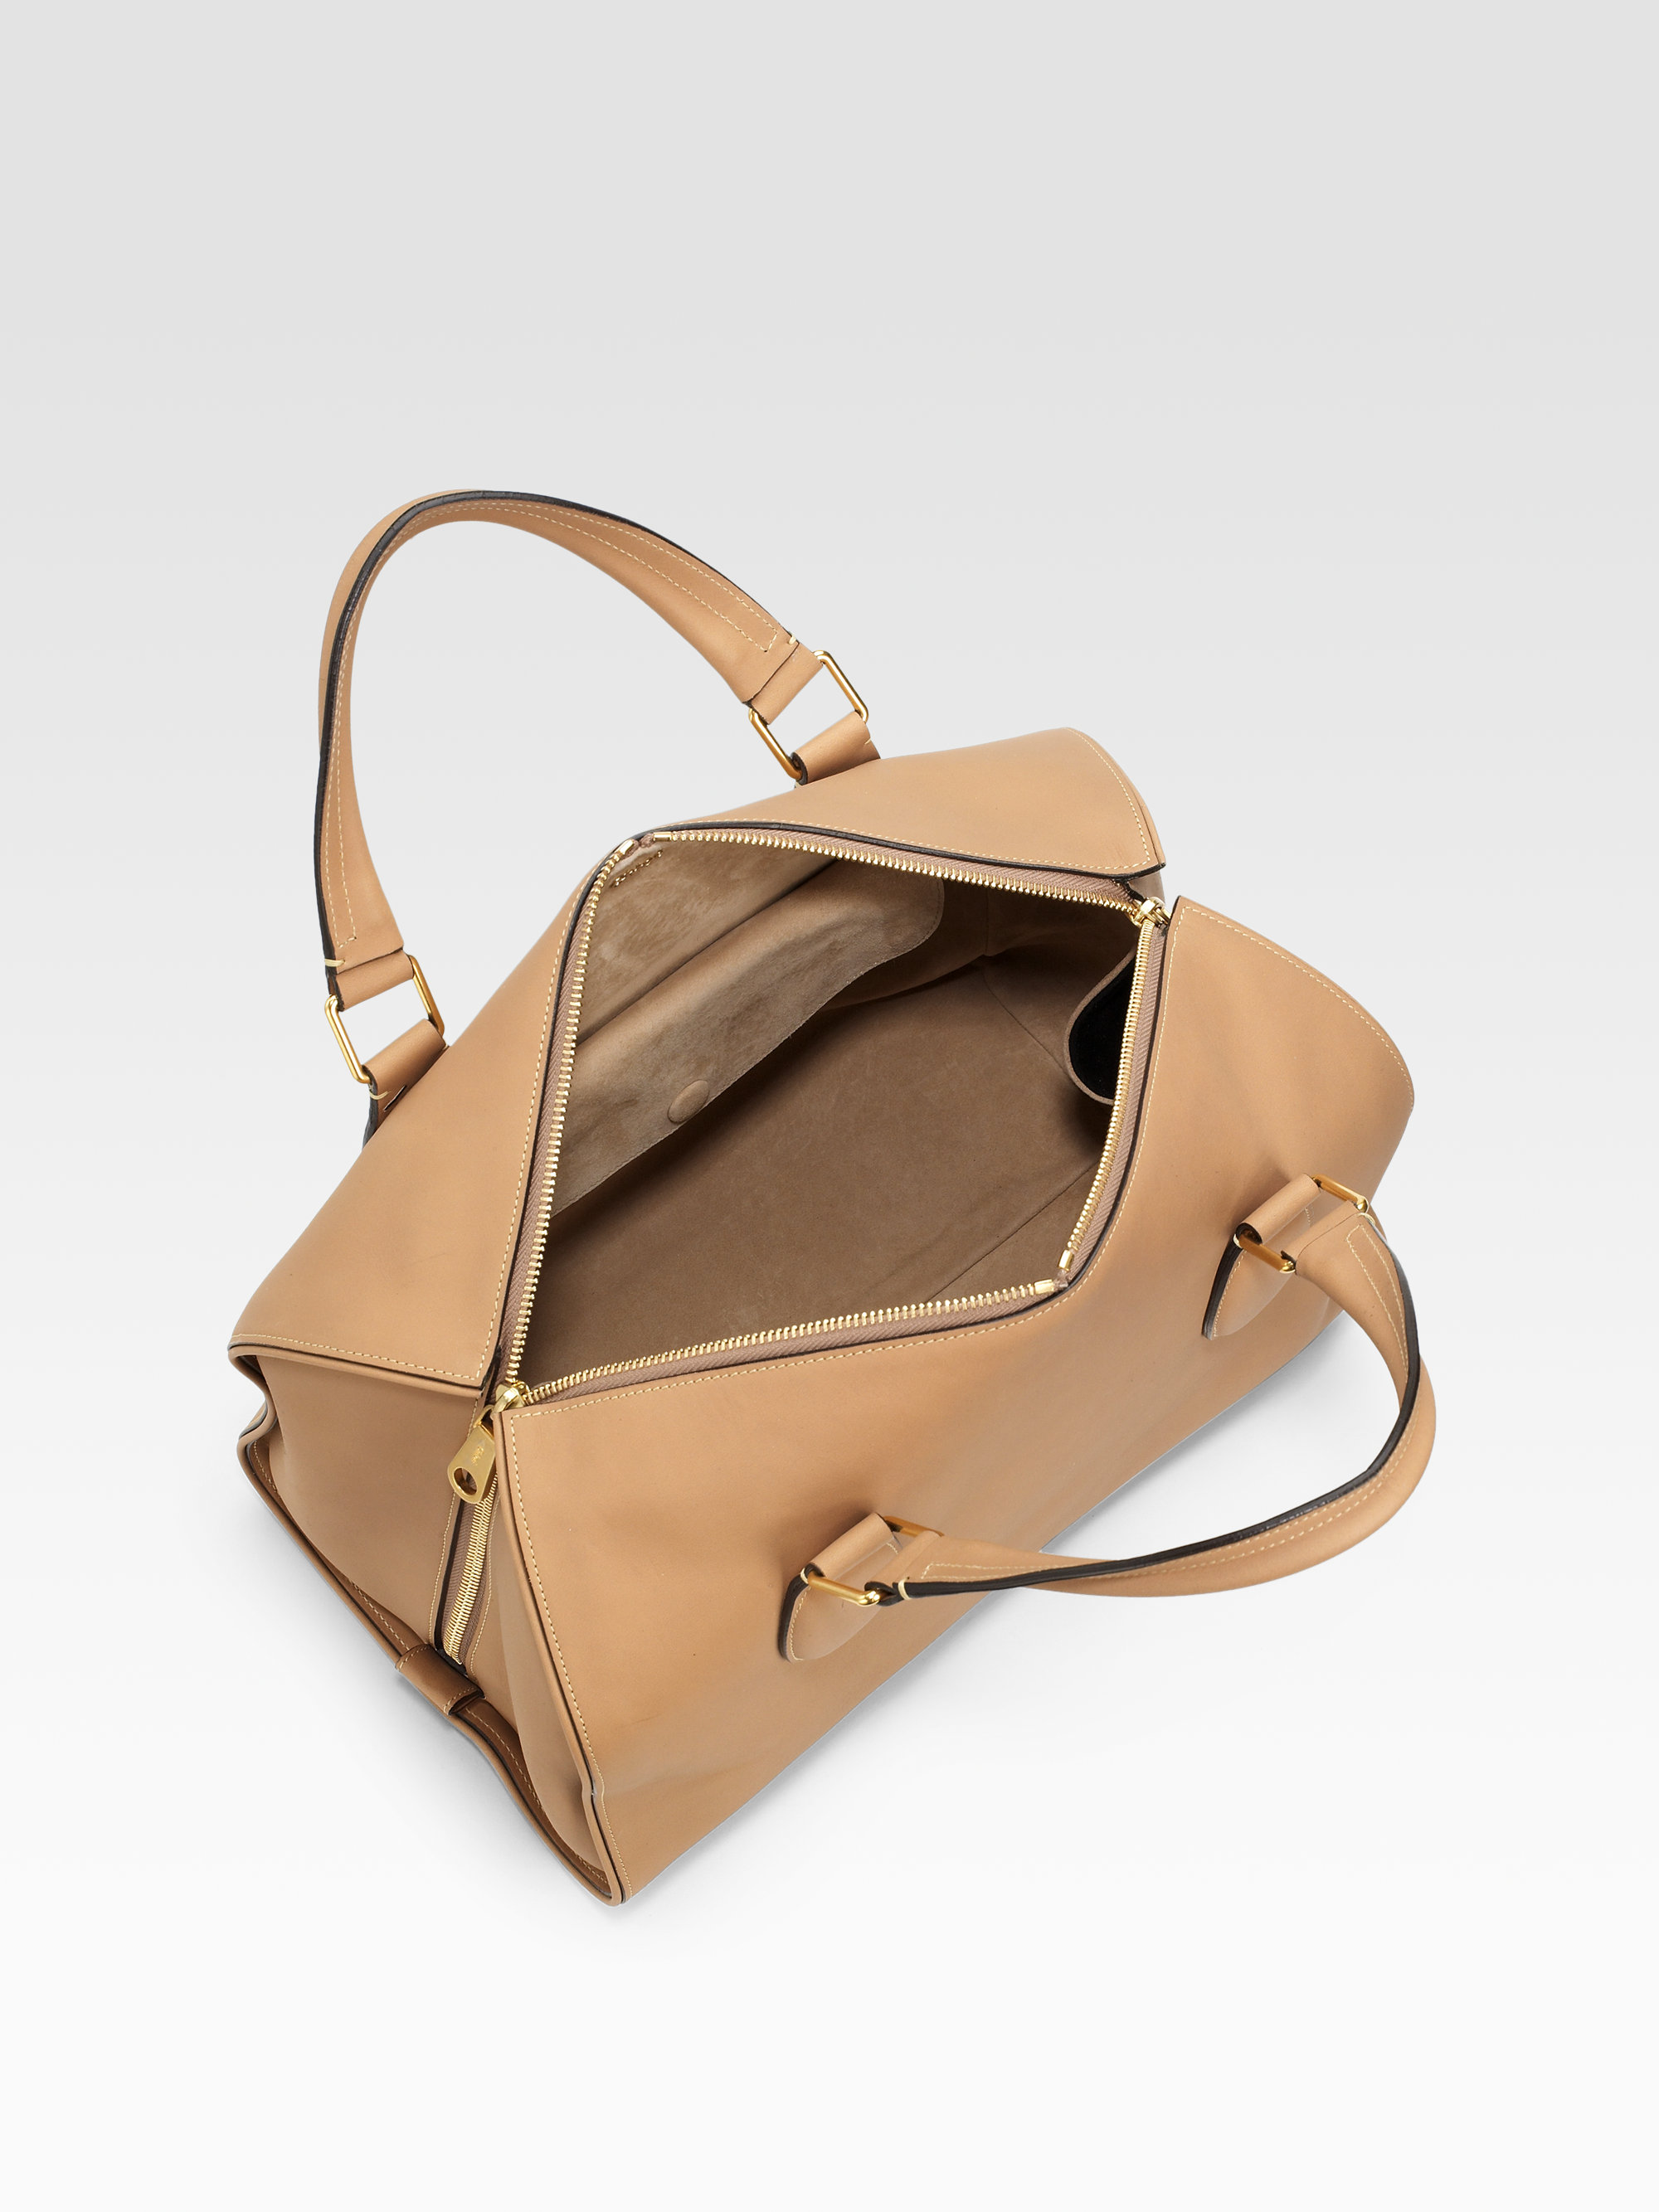 Chlo�� Aurore Top Handle Bag in Beige (wood) | Lyst